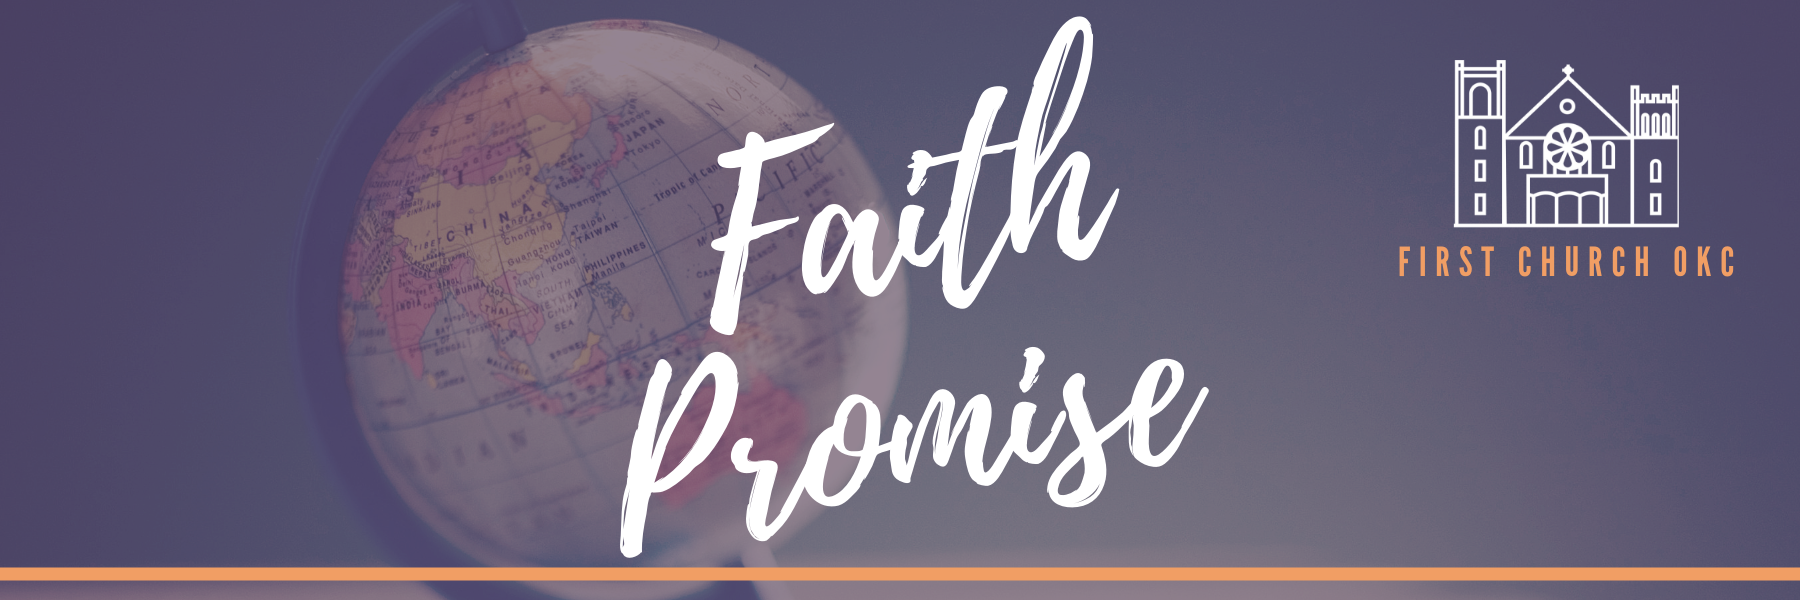 Faith promise email header.png